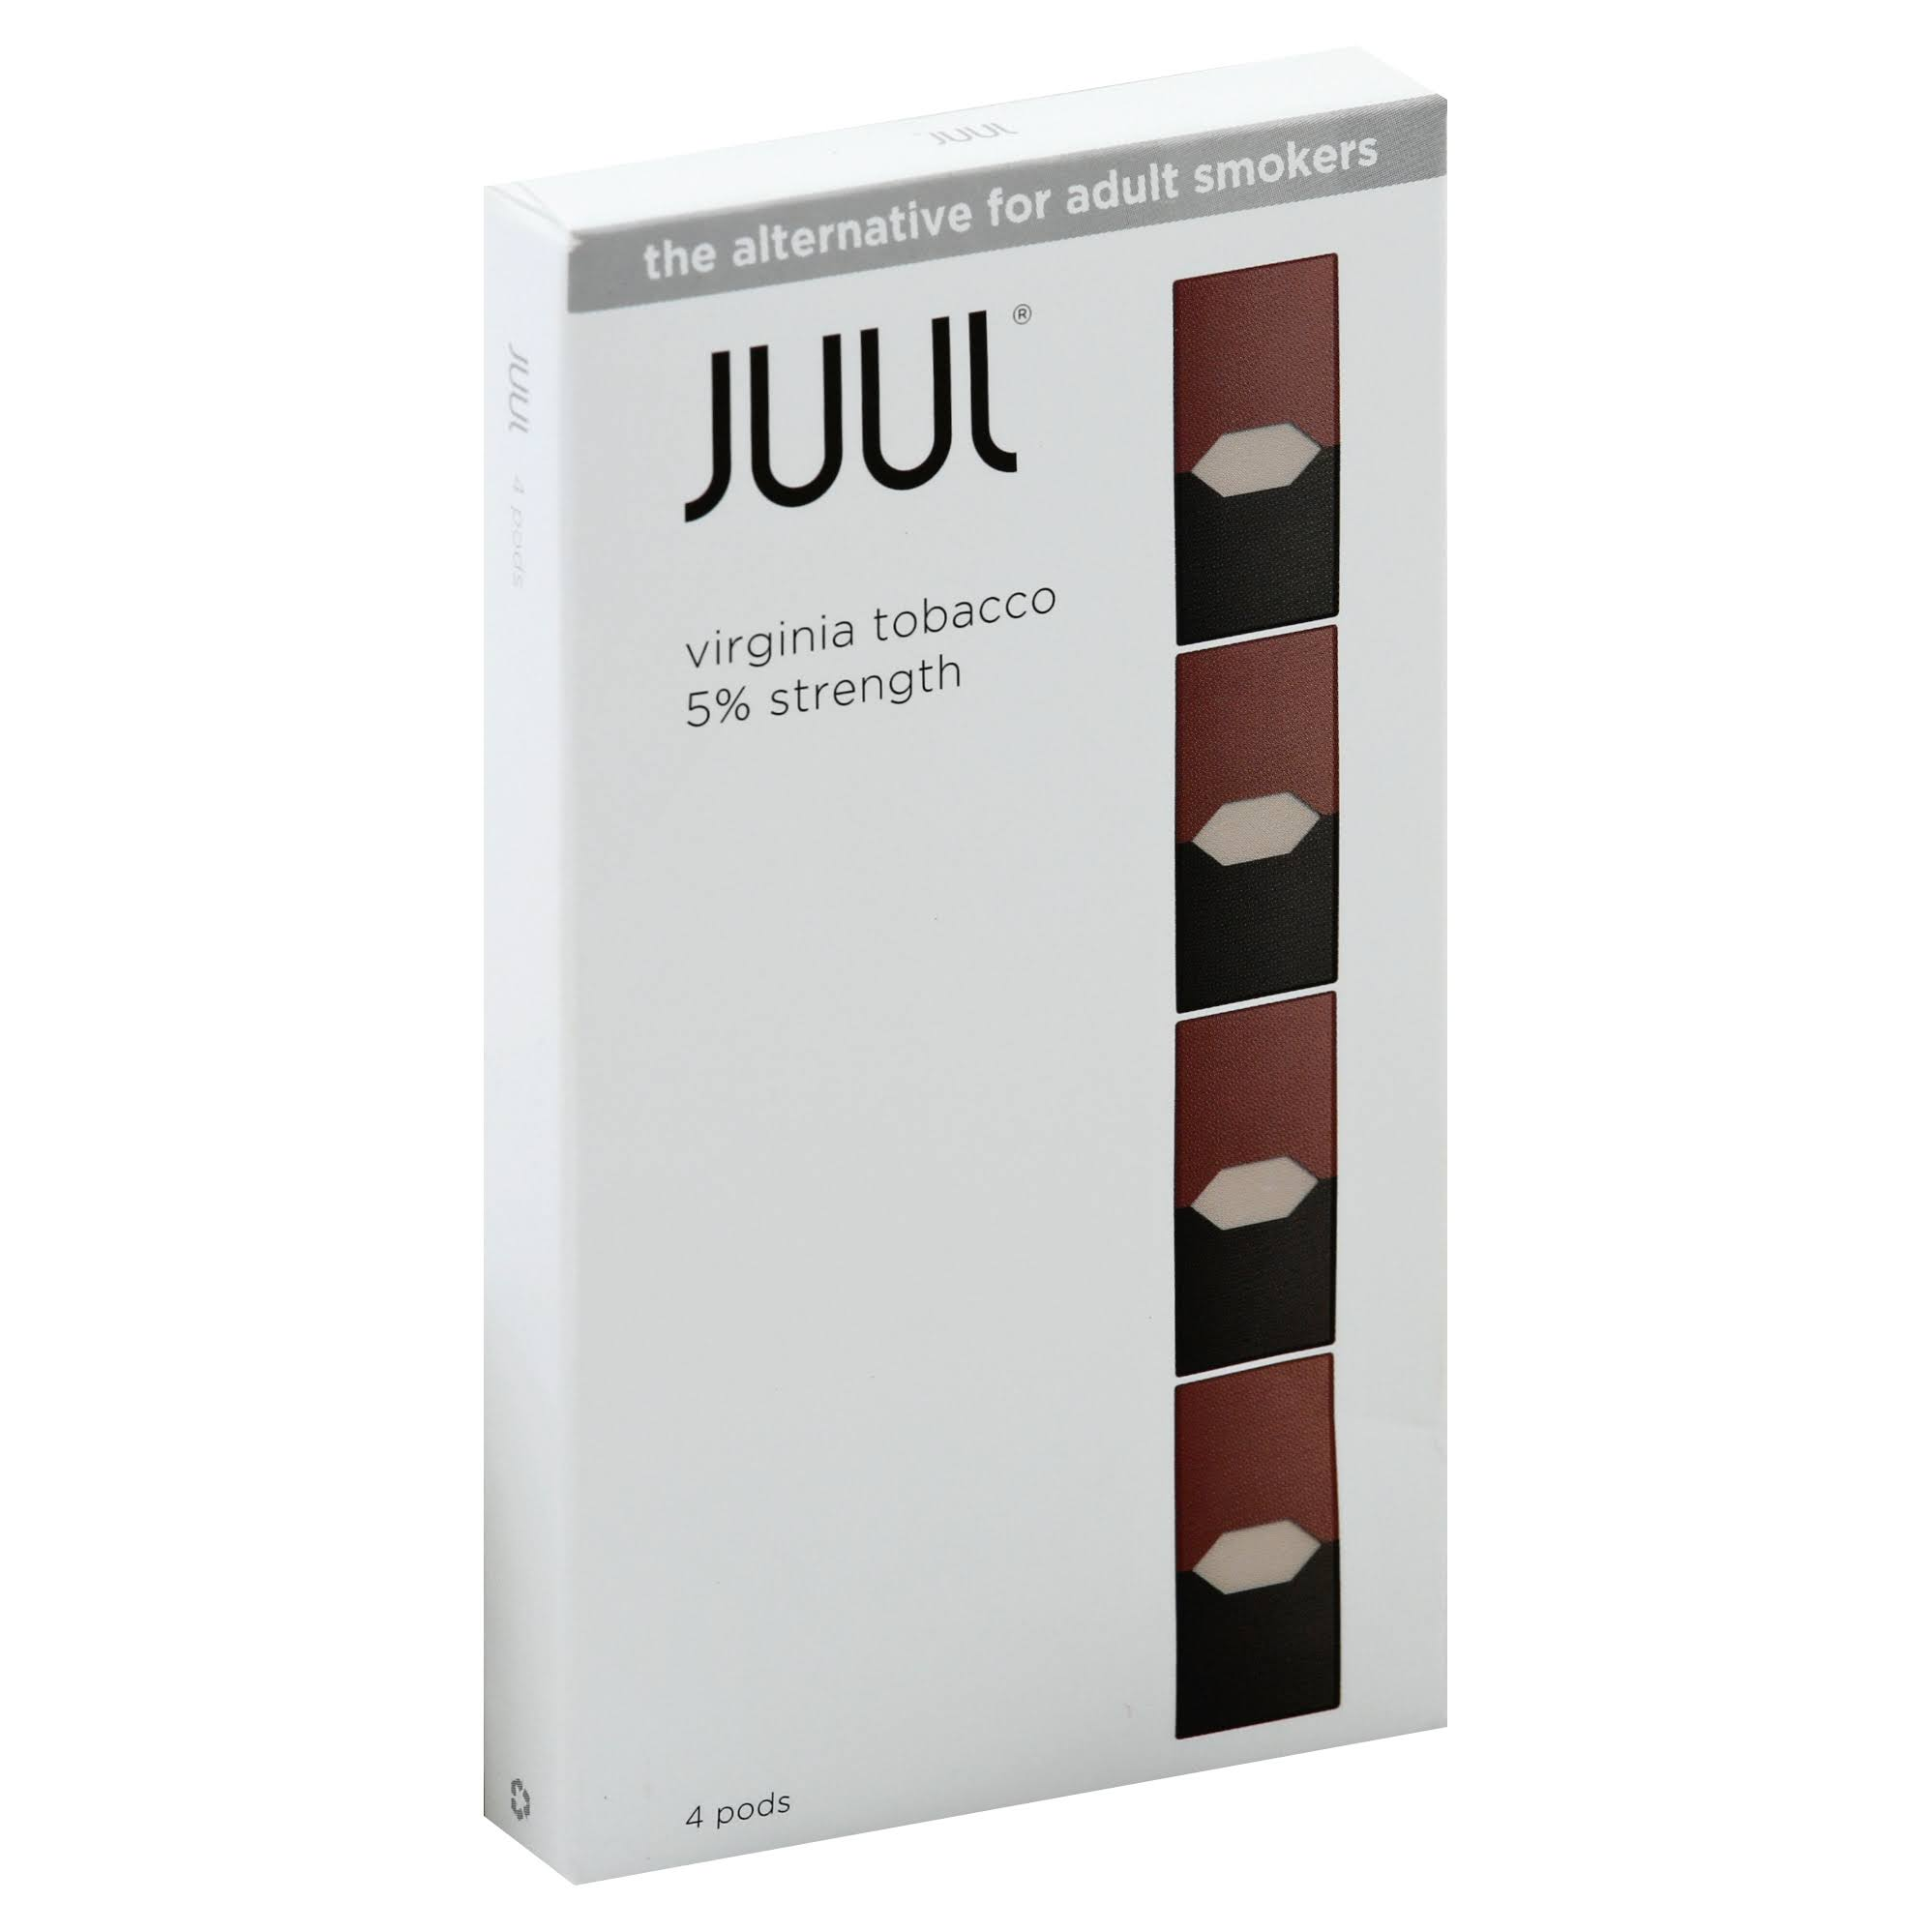 JUUL Pods, Virginia Tobacco - 4 pods